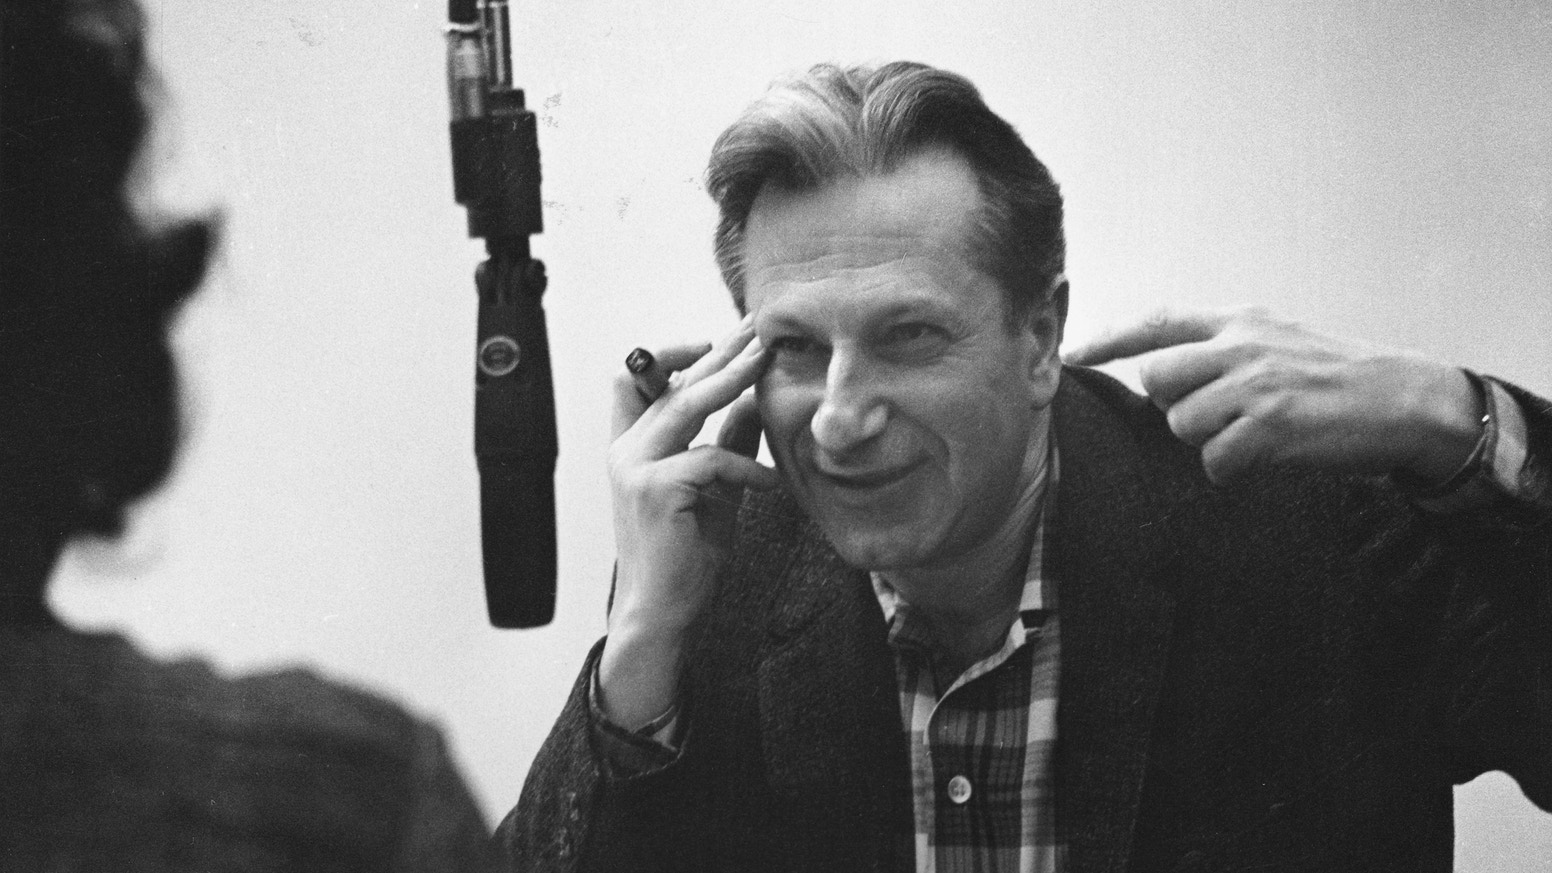 Building The Studs Terkel Radio Archive Online Collection by